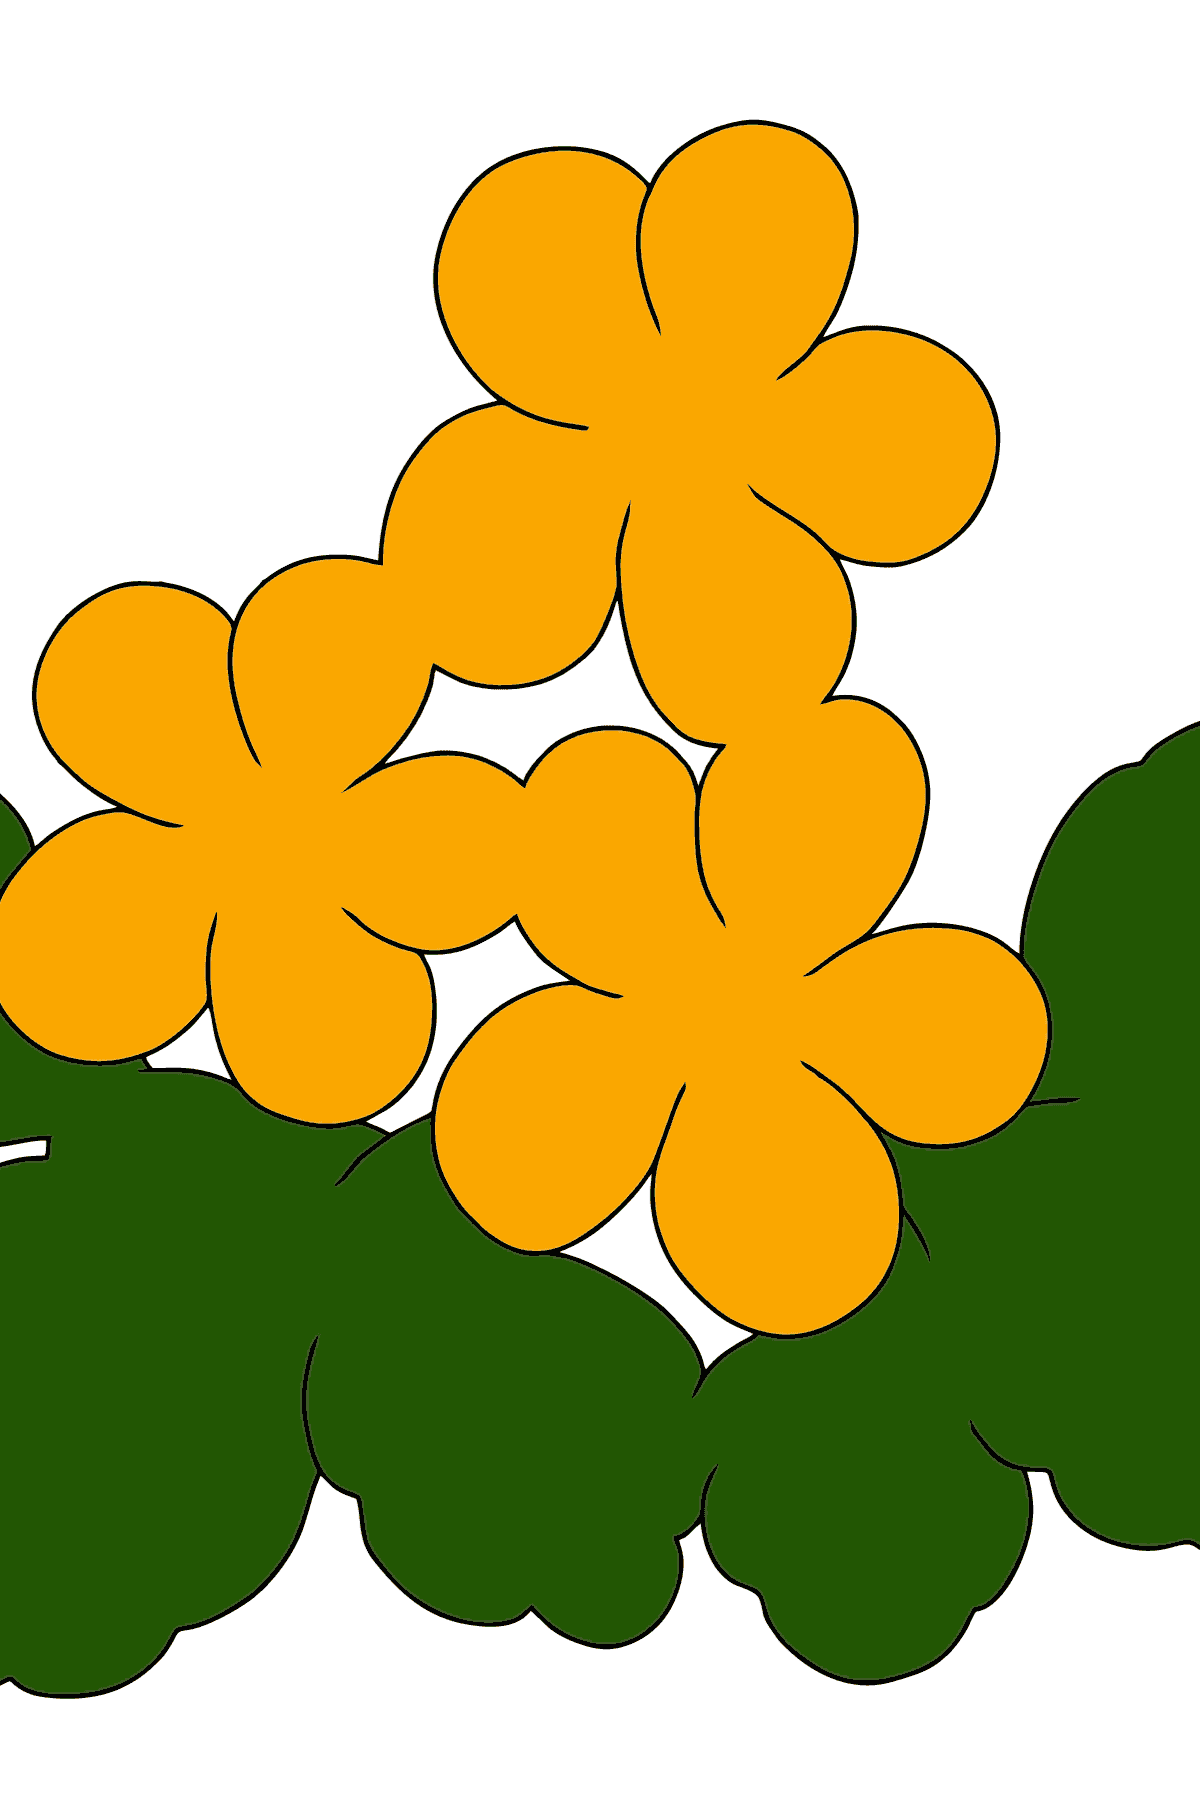 Coloring Page - Spring and First Flowers - Coloring Pages for Kids